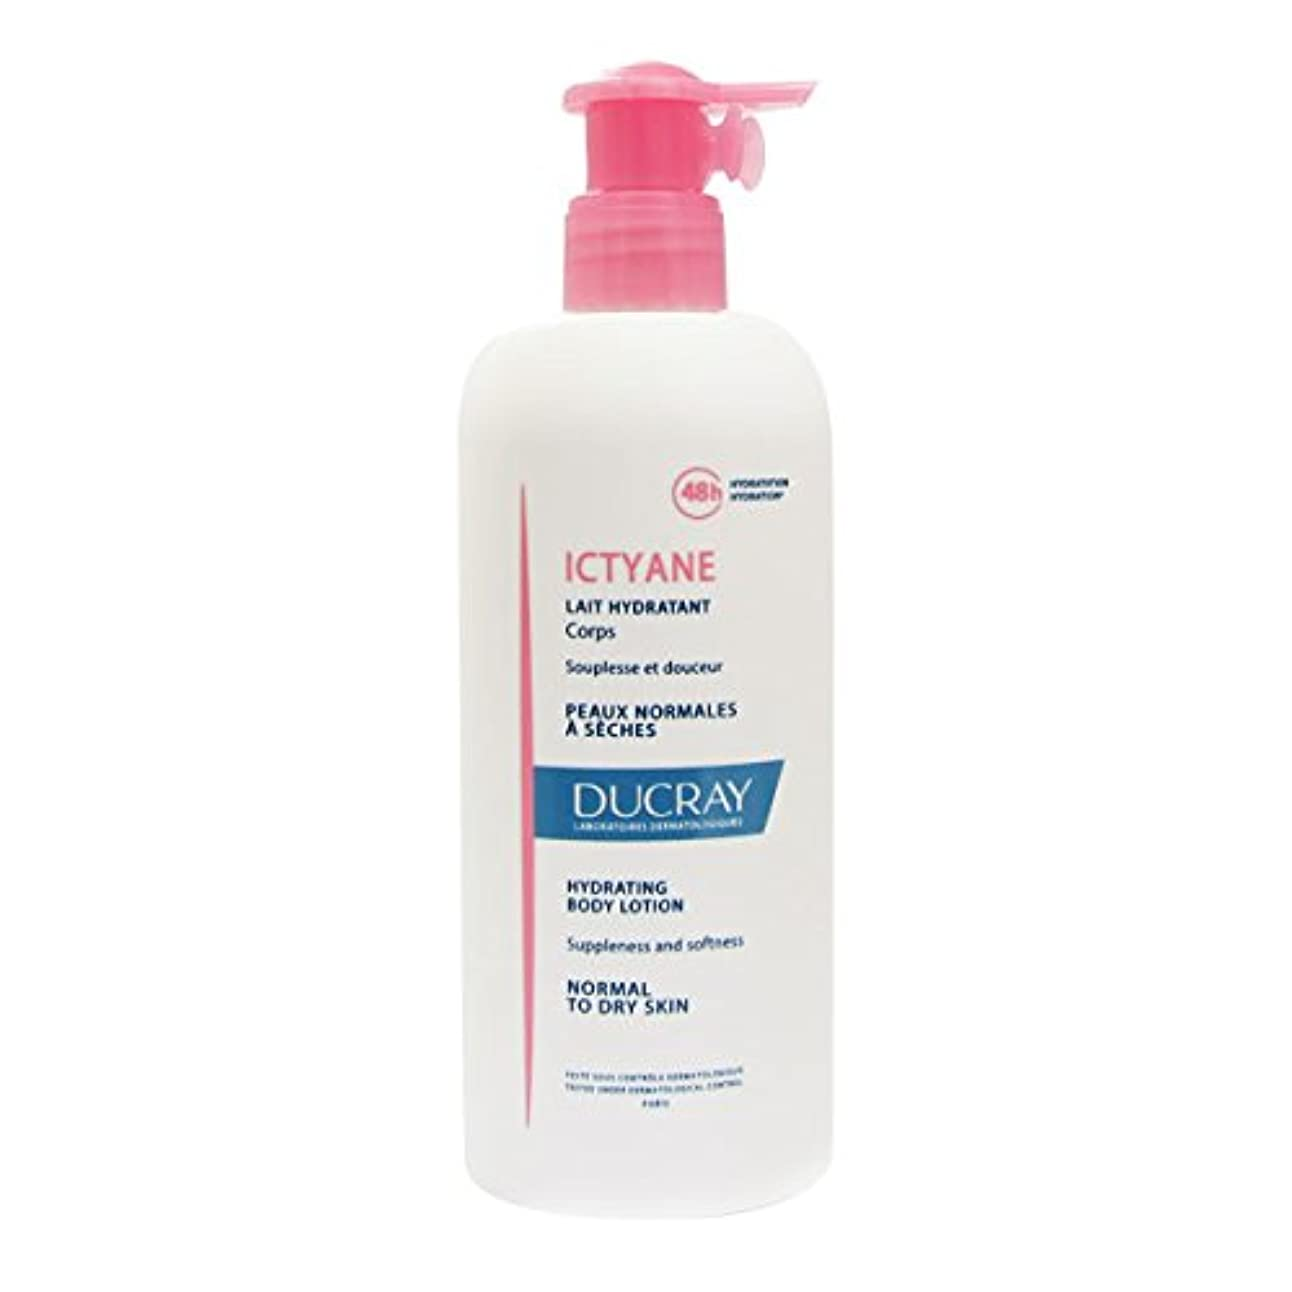 郵便物縫うくびれたDucray Ictyane Hydrating Protective Lotion 400ml [並行輸入品]